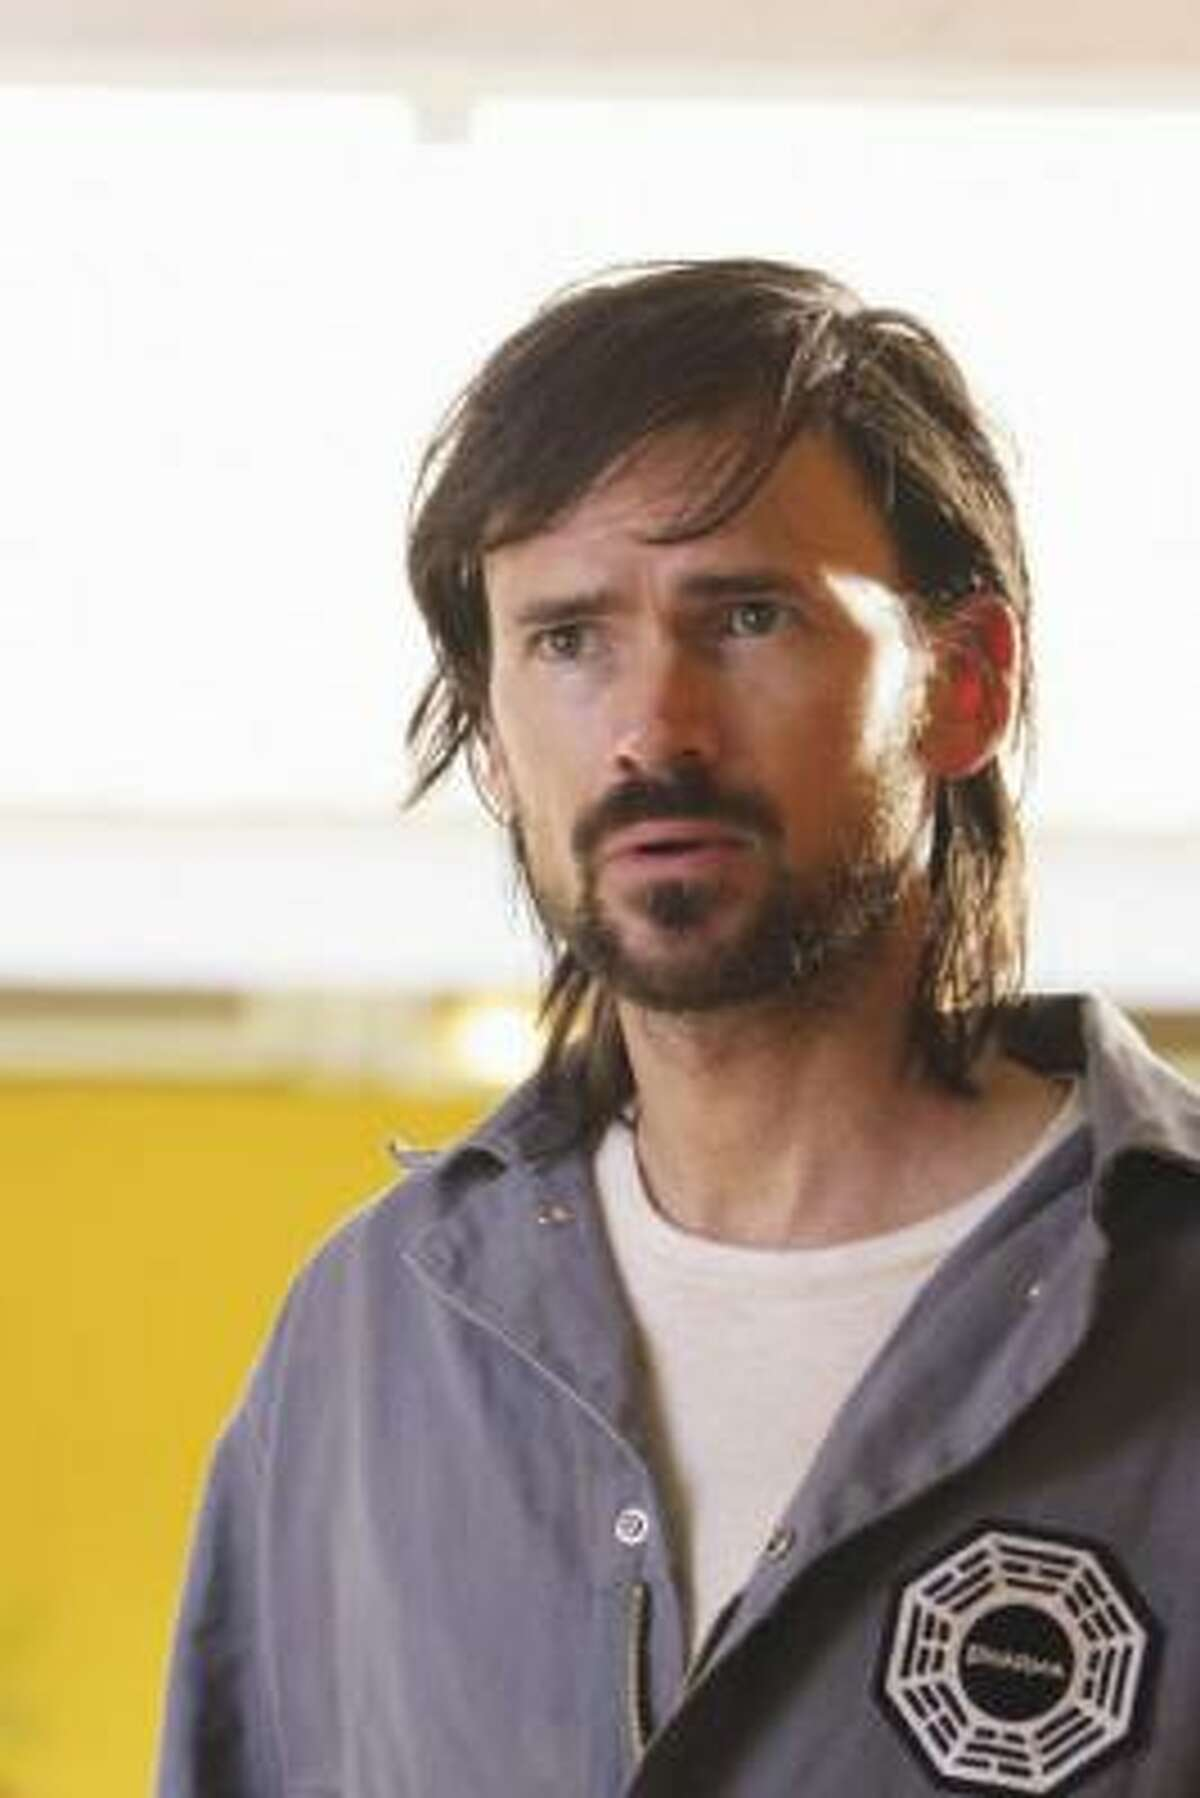 The time of reckoning has begun when Daniel Faraday comes clean regarding what he knows about the island.